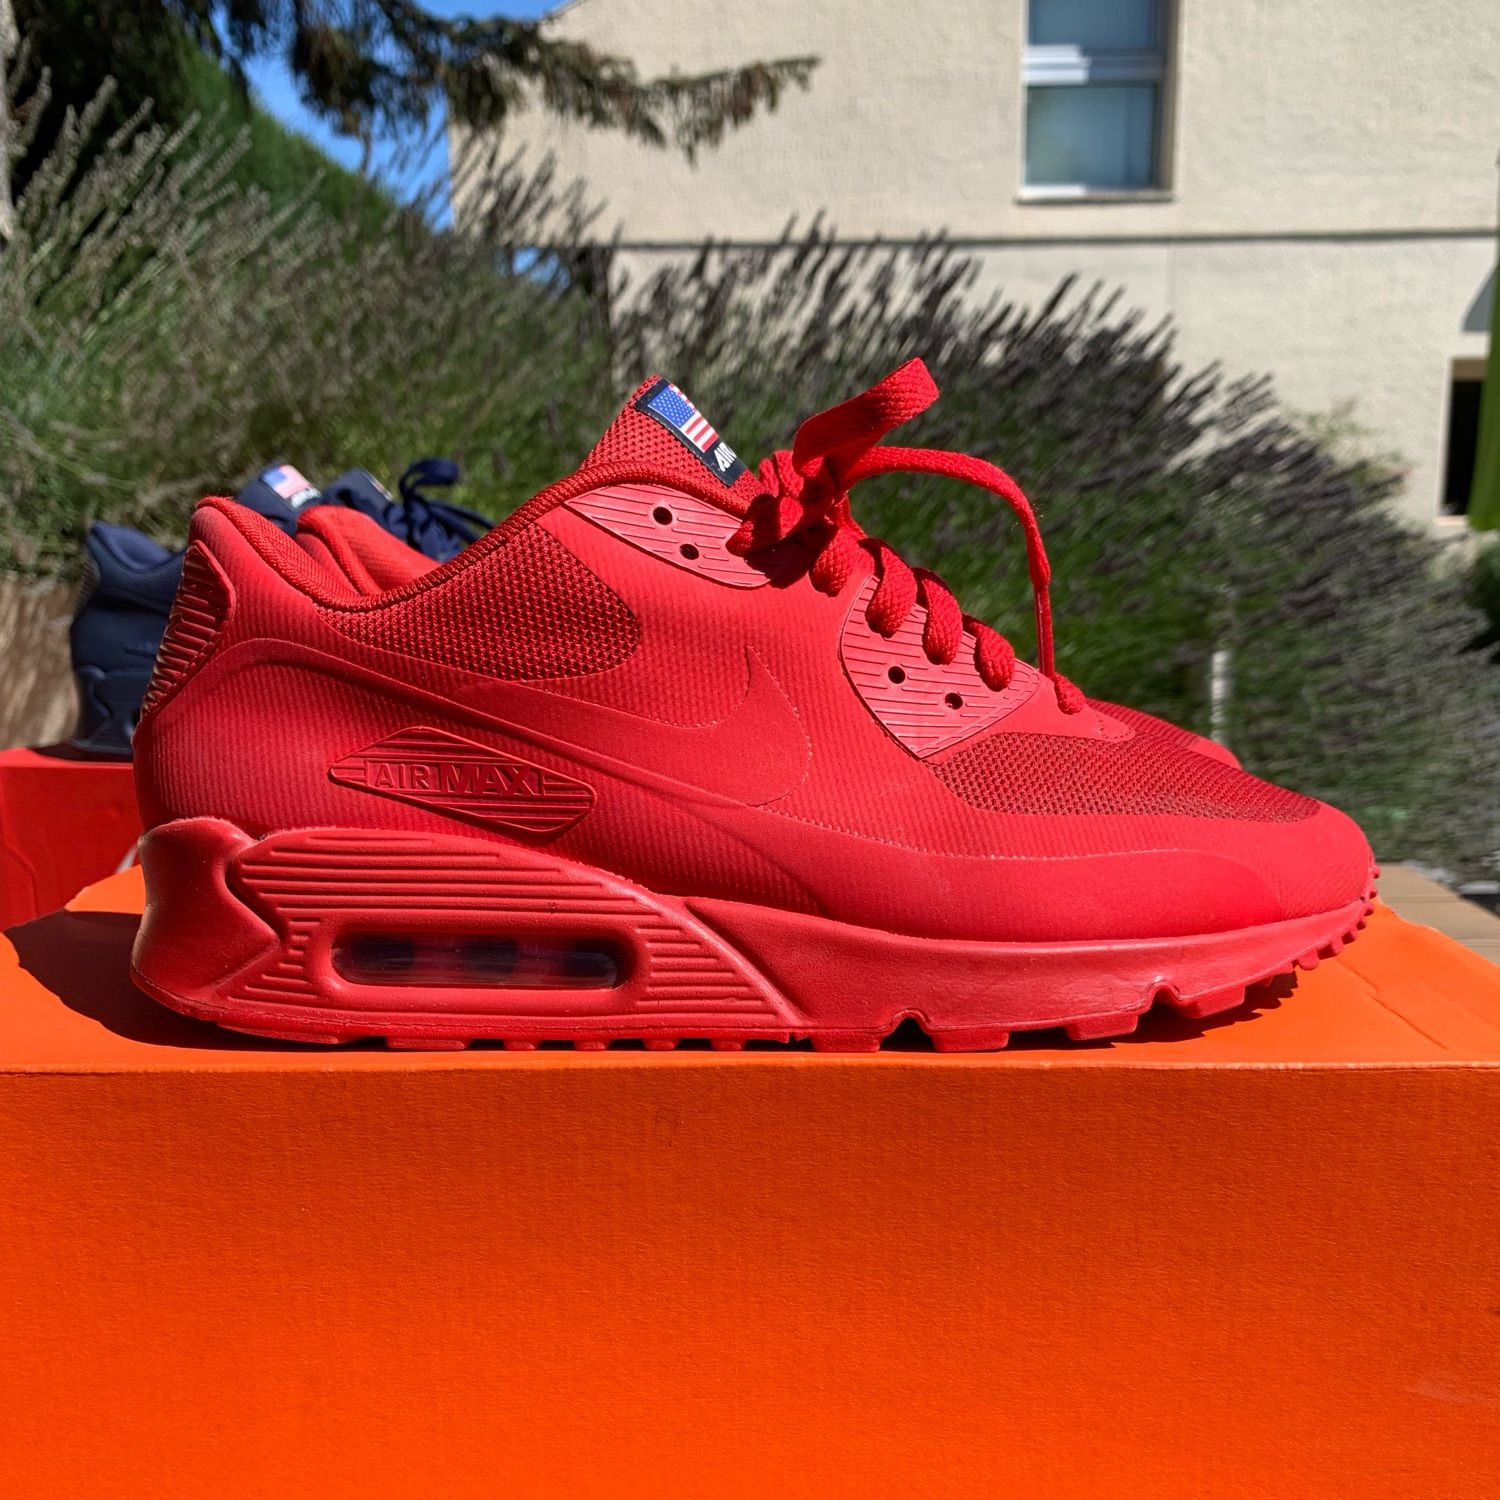 Útil rueda Catedral  Nike Air Max 90 Hyperfuse Qs Independence Day Red